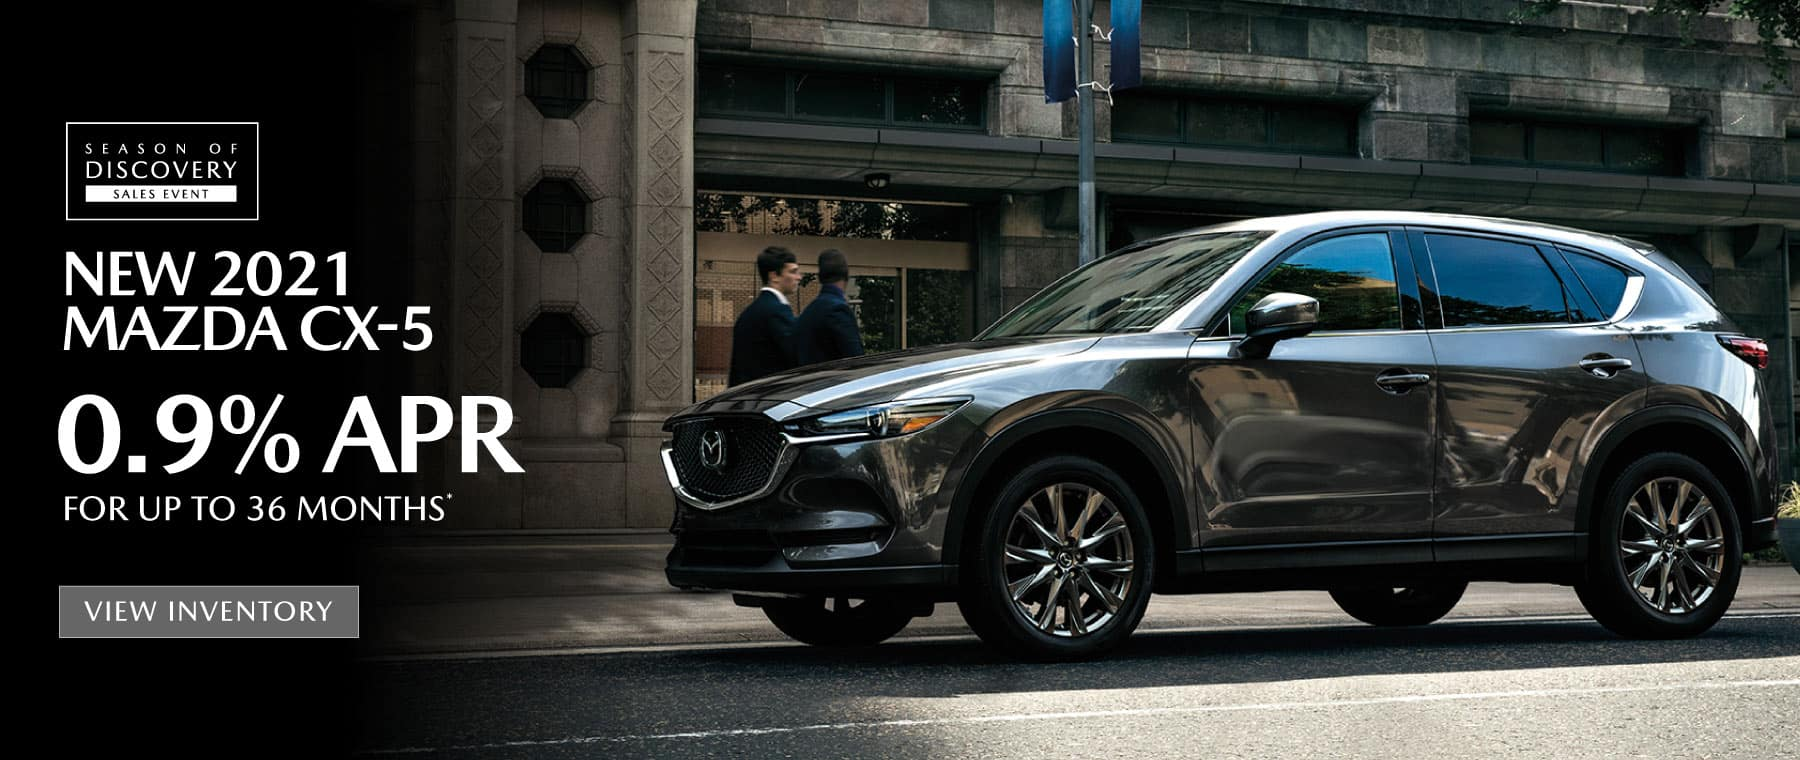 NEW 2021 MAZA CX-5 – 0.9% APR for up to 36 months*